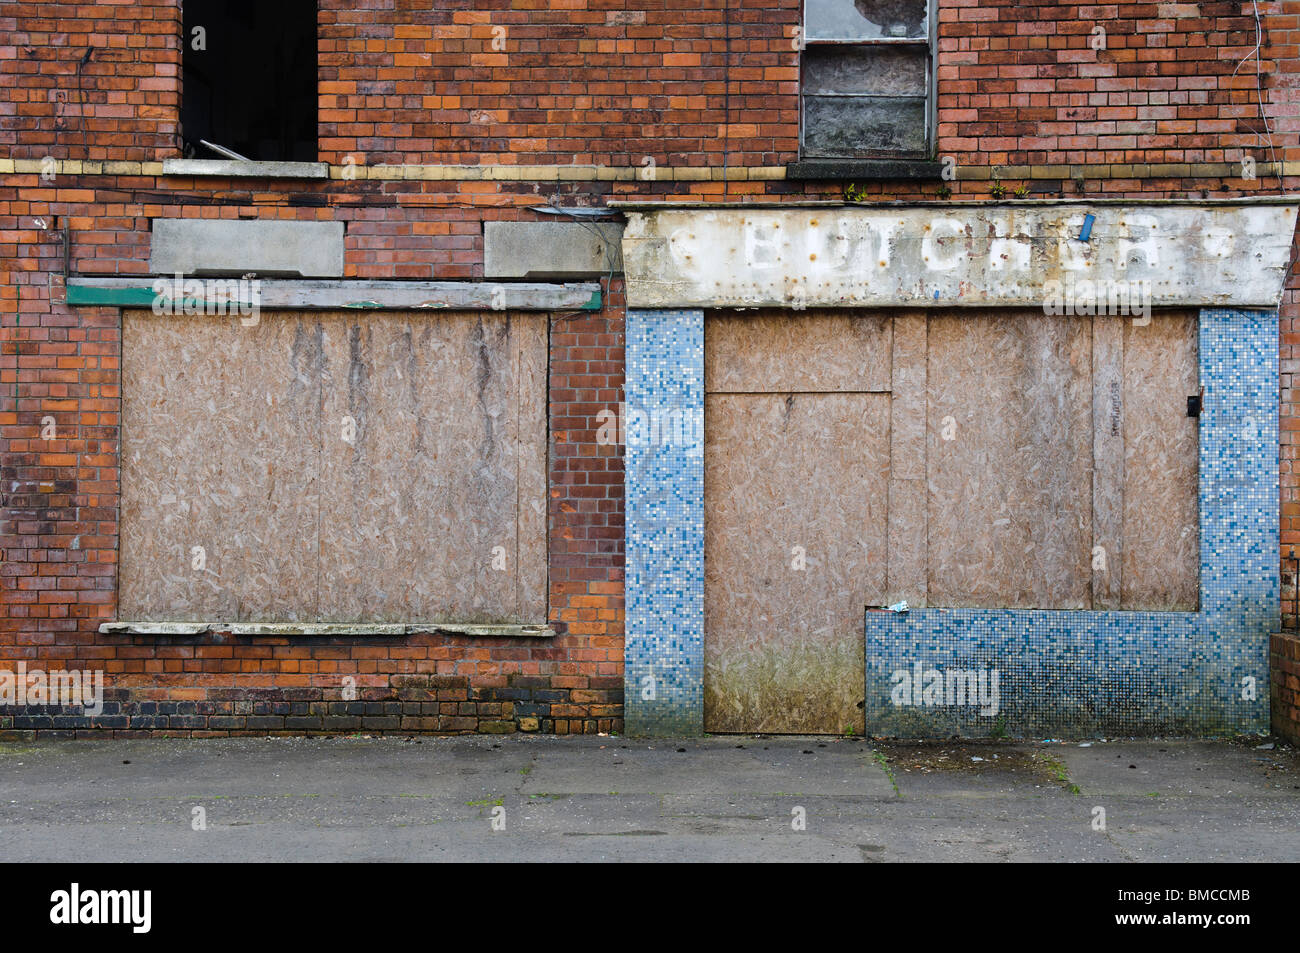 Abandoned shop with blocked up windows and doors in a street in Belfast & Abandoned shop with blocked up windows and doors in a street in ... Pezcame.Com